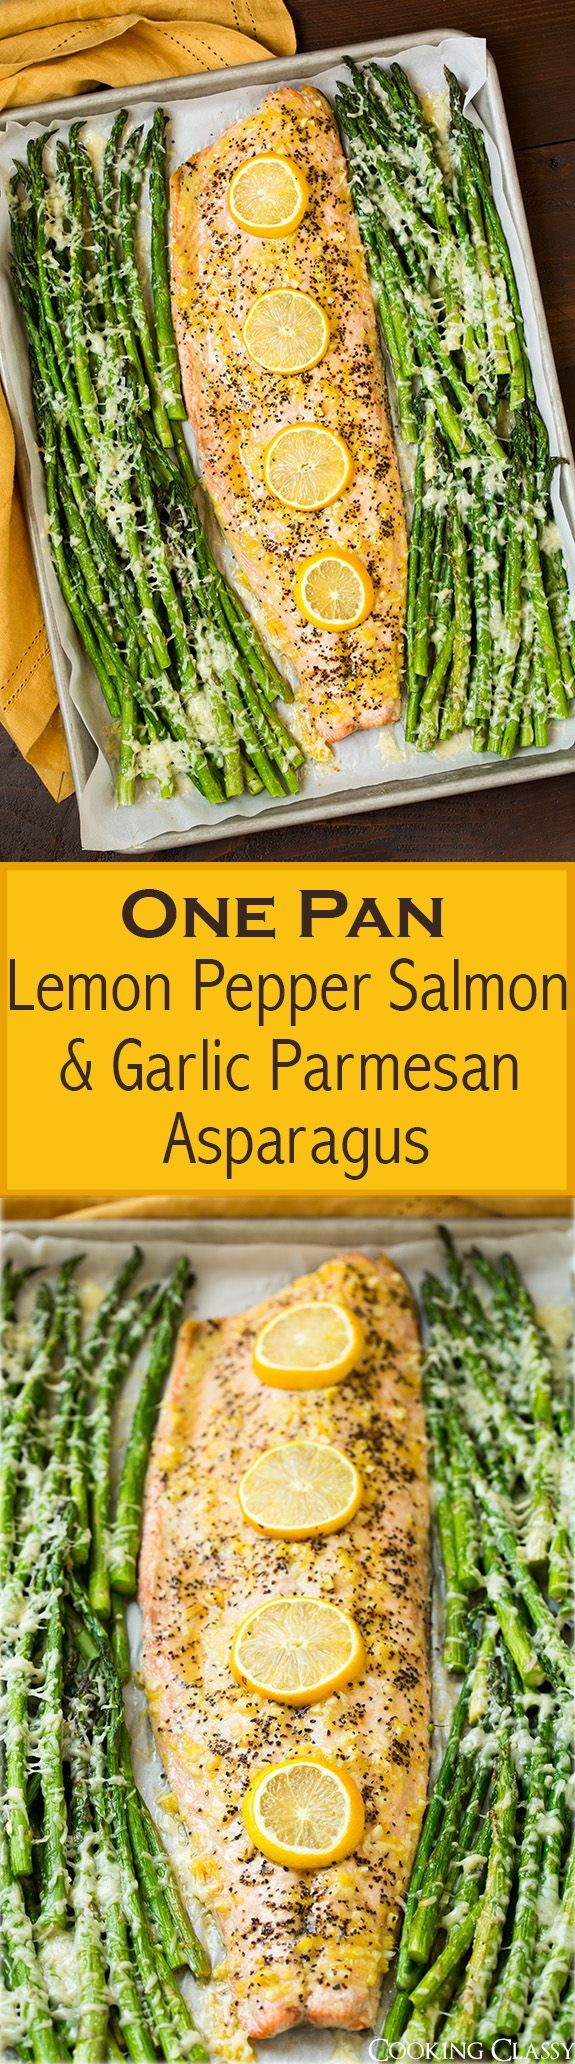 awesome One Pan Roasted Lemon Pepper Salmon and Garlic Parmesan Asparagus - Cooking Classy